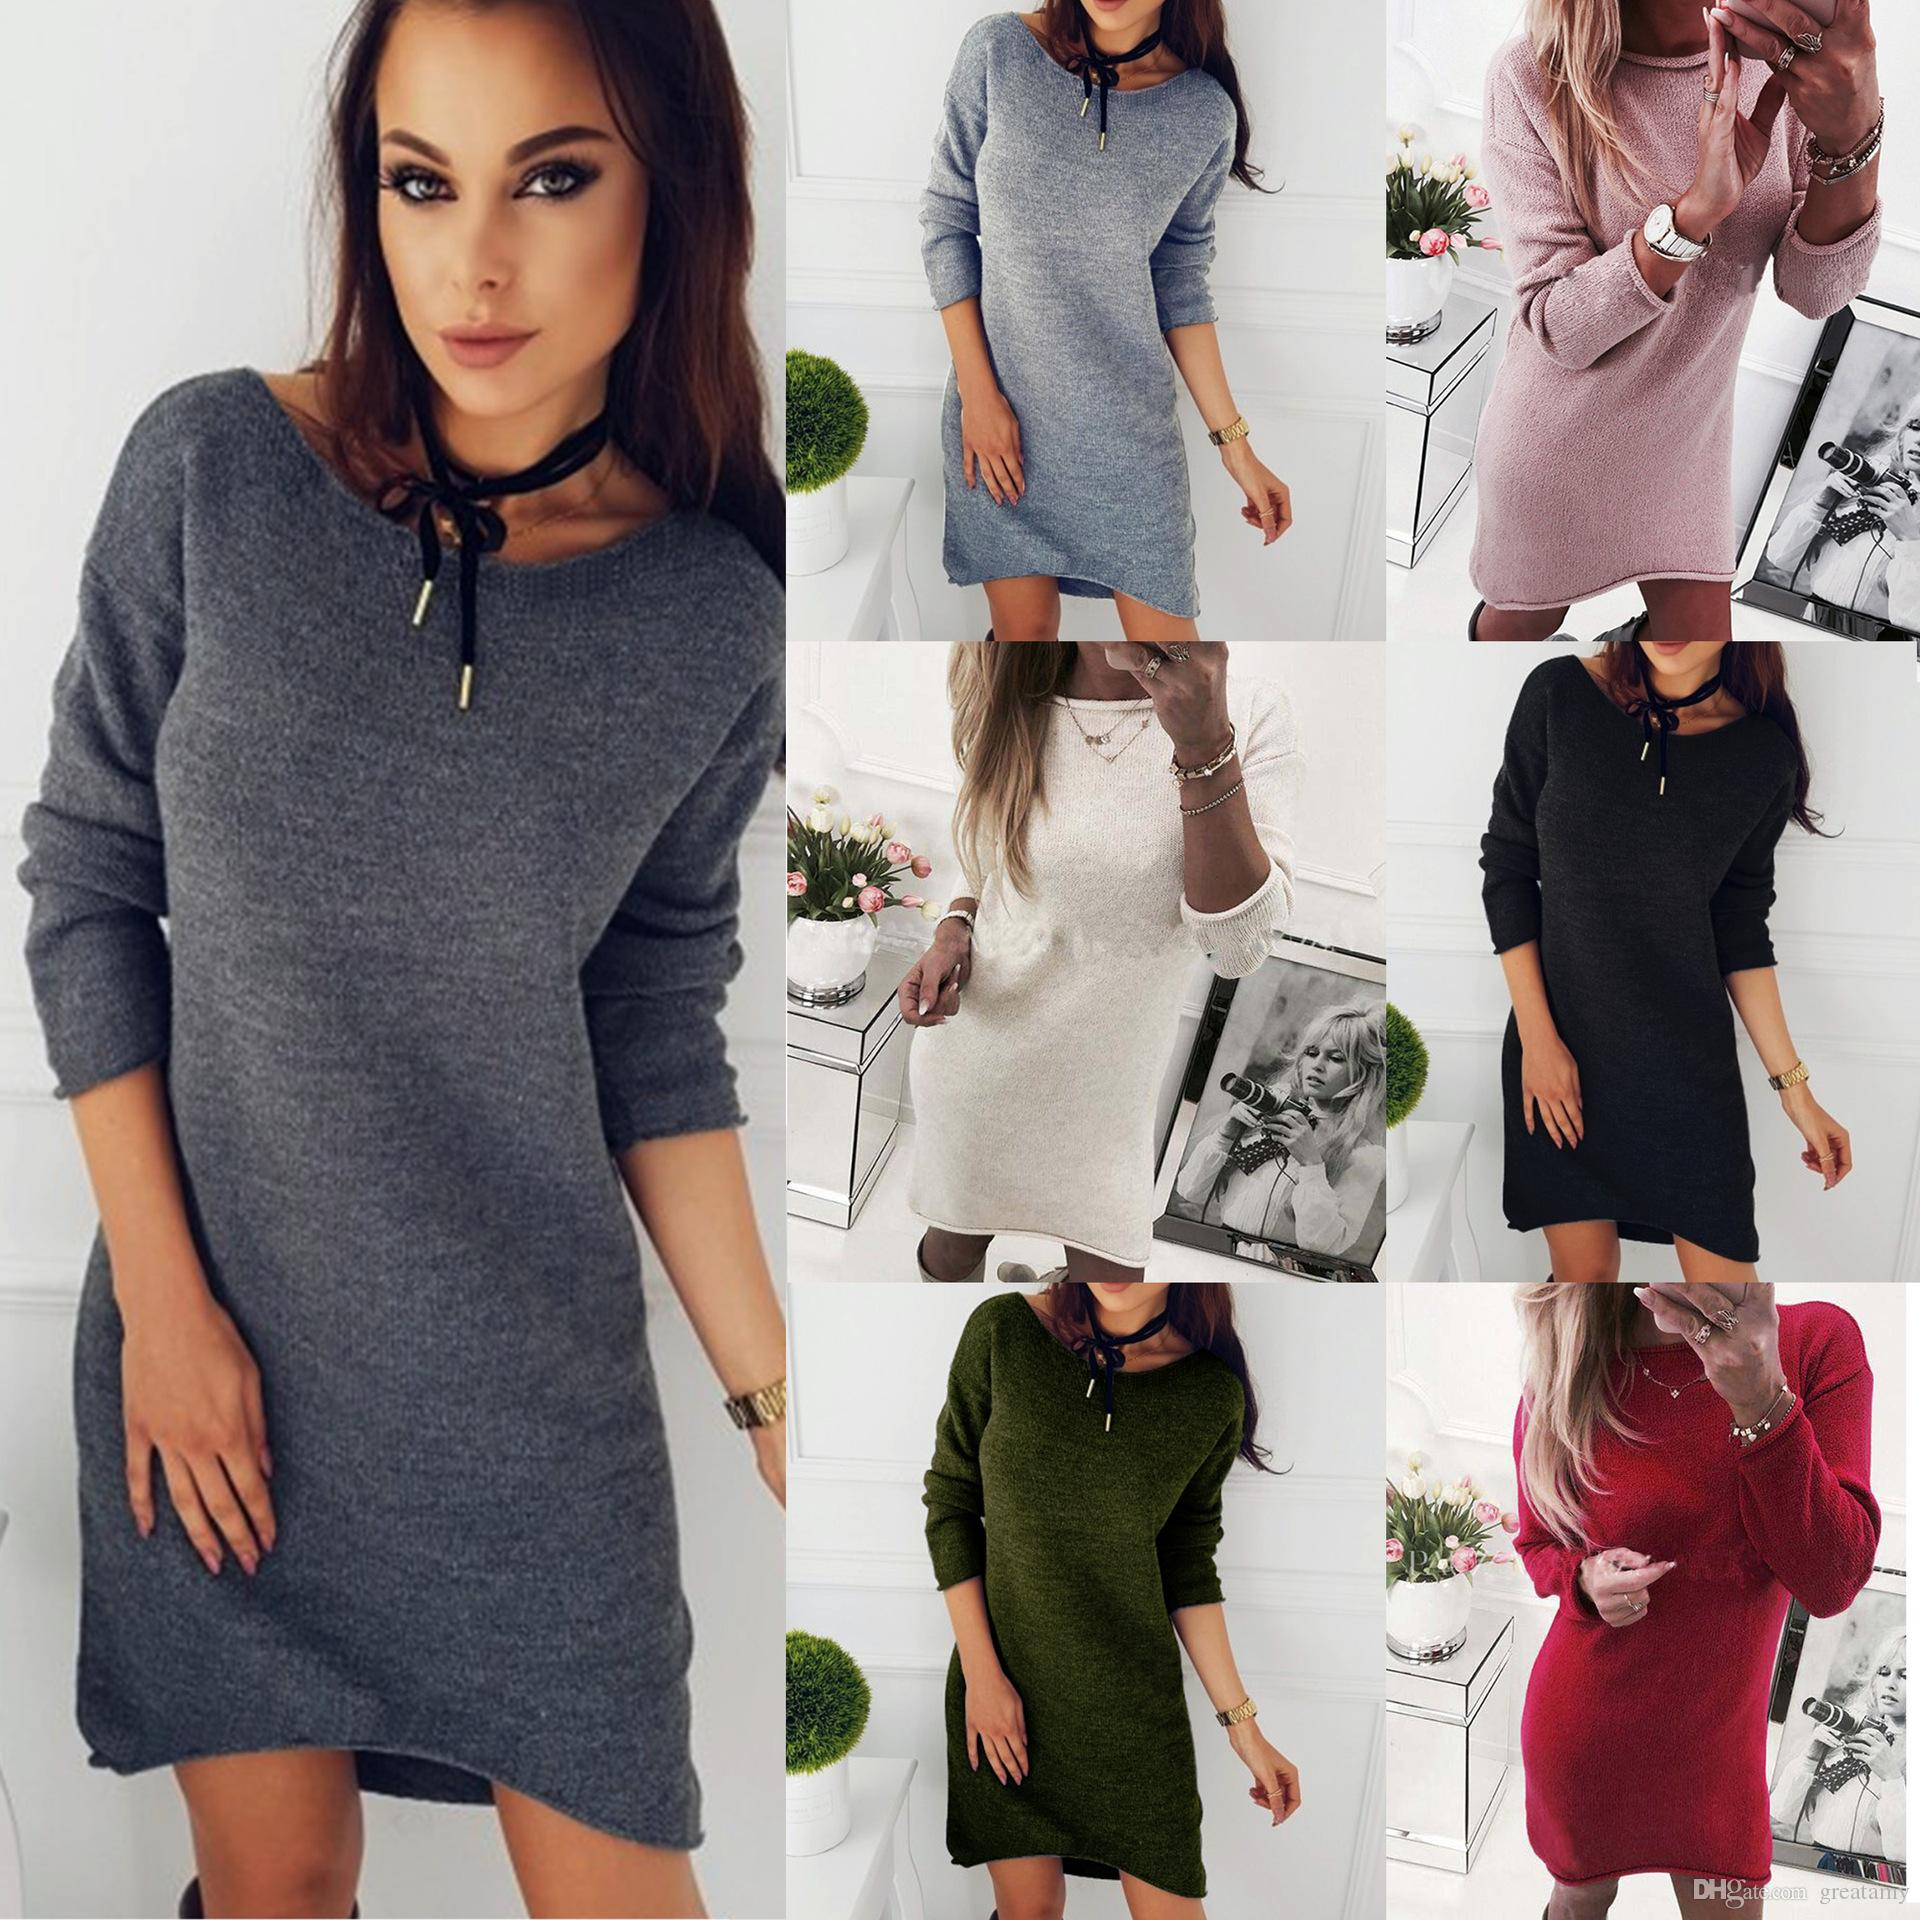 ef25c1b8d7 2019 Women Sexy Long Sleeve Crew Neck Solid Color Cold Knitted Casual Midi  Dress Sweater Winter Maxi Dress From Greatamy